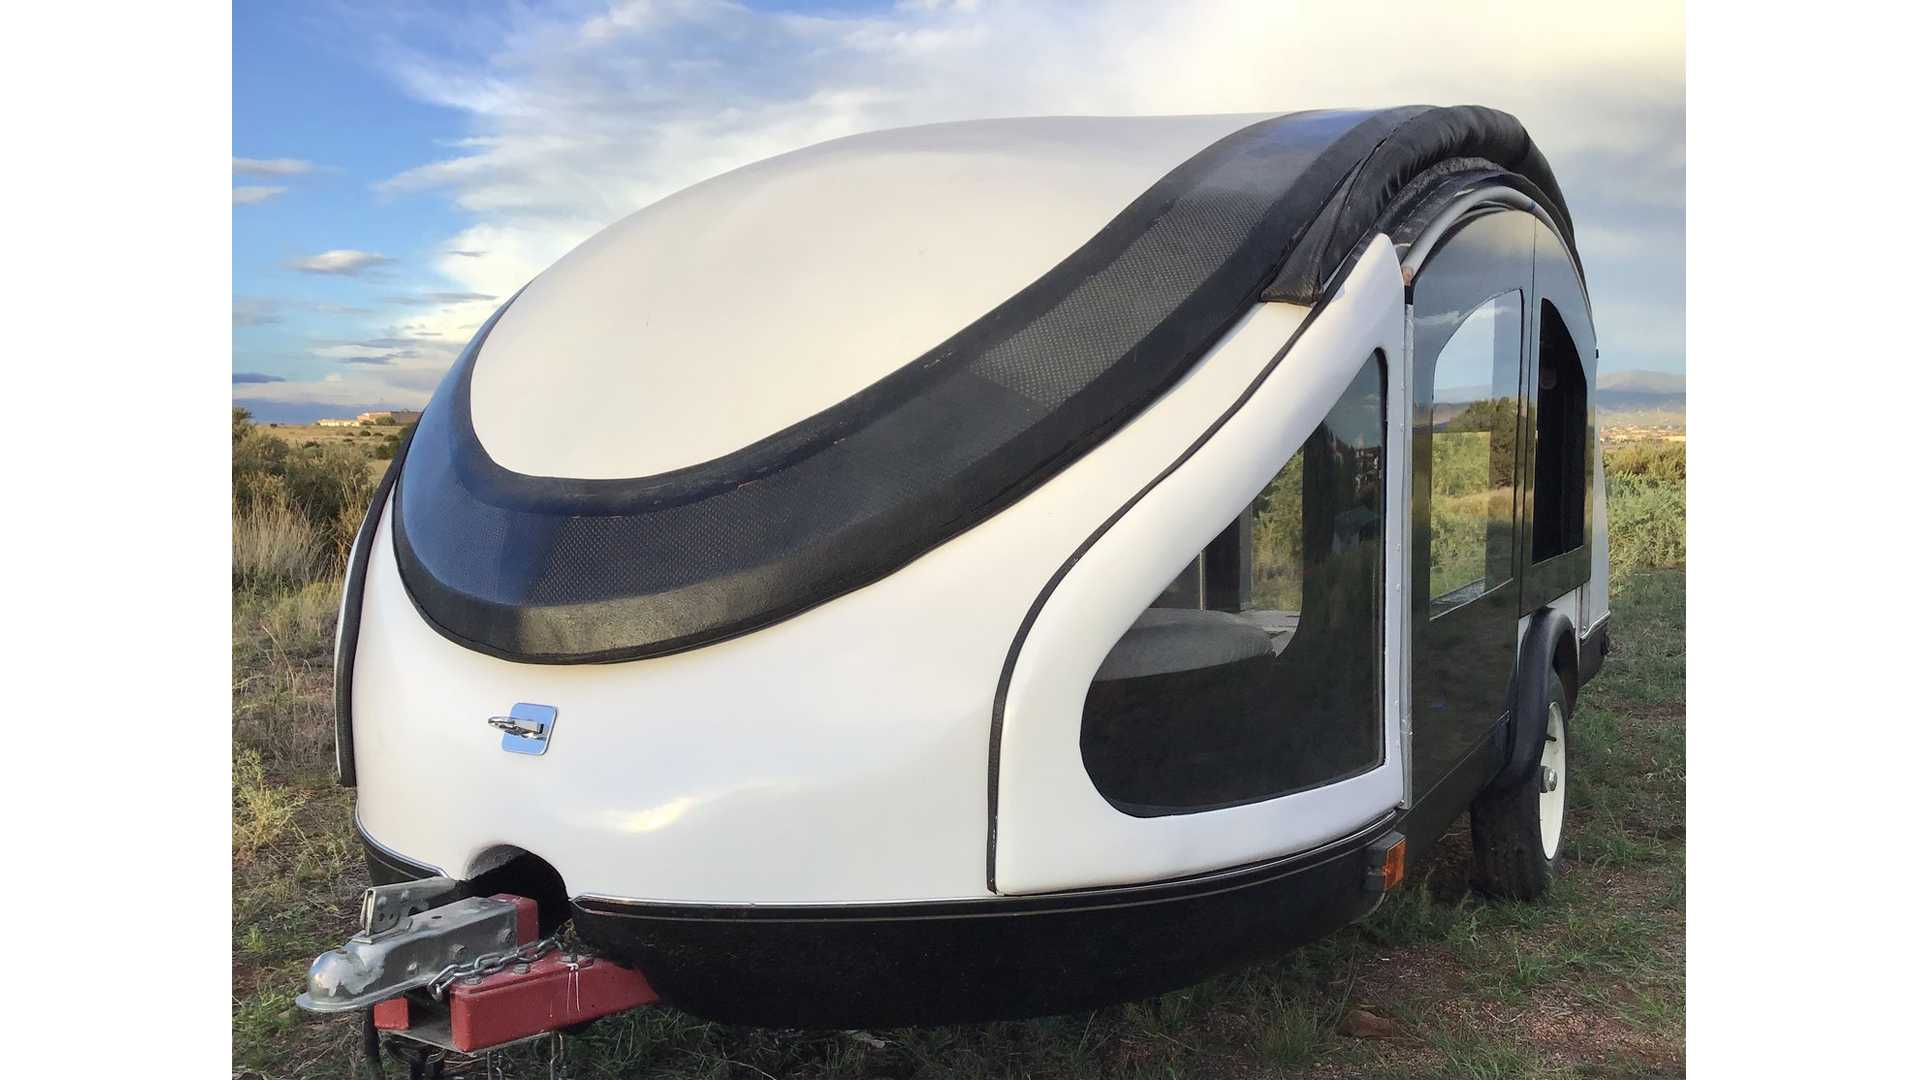 Teardrop Camper With Gull-Wing Roof Is Literally Made Of